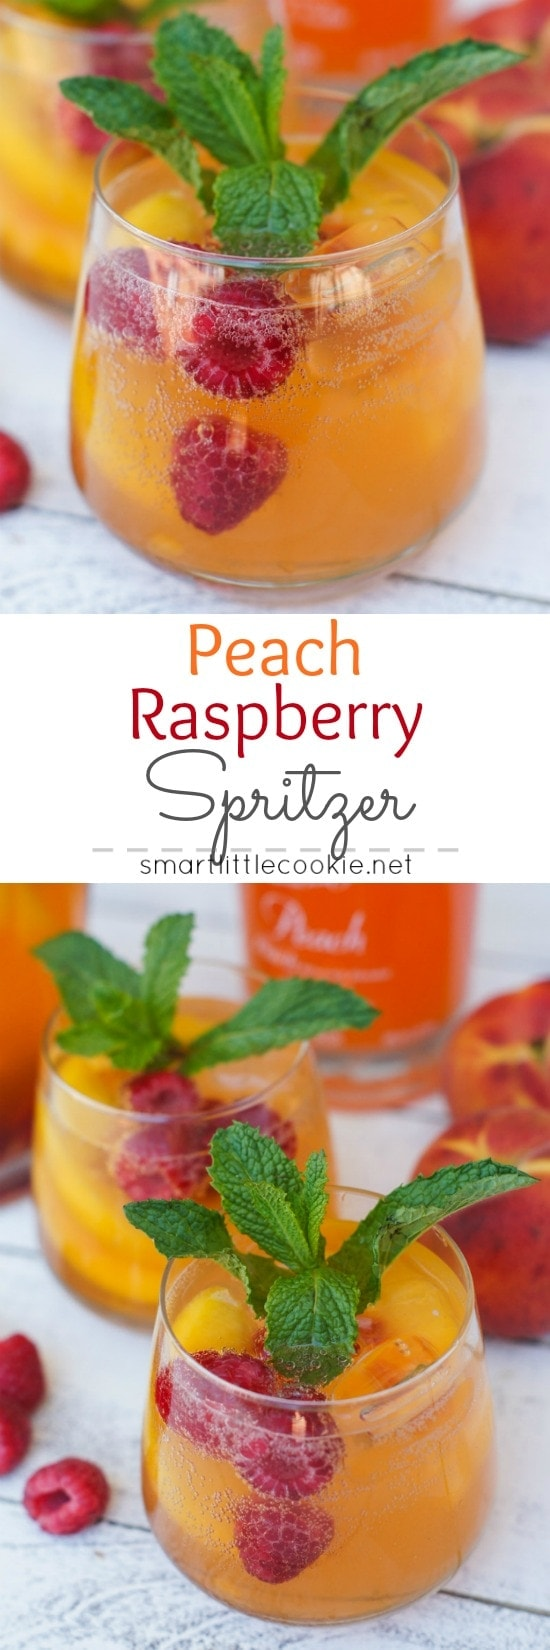 This Peach Raspberry Spritzer is the perfect summery drink for backyard gatherings, Sunday brunch or even friends' game night. The refreshing and delicious cocktail will be a hit among family and friends.